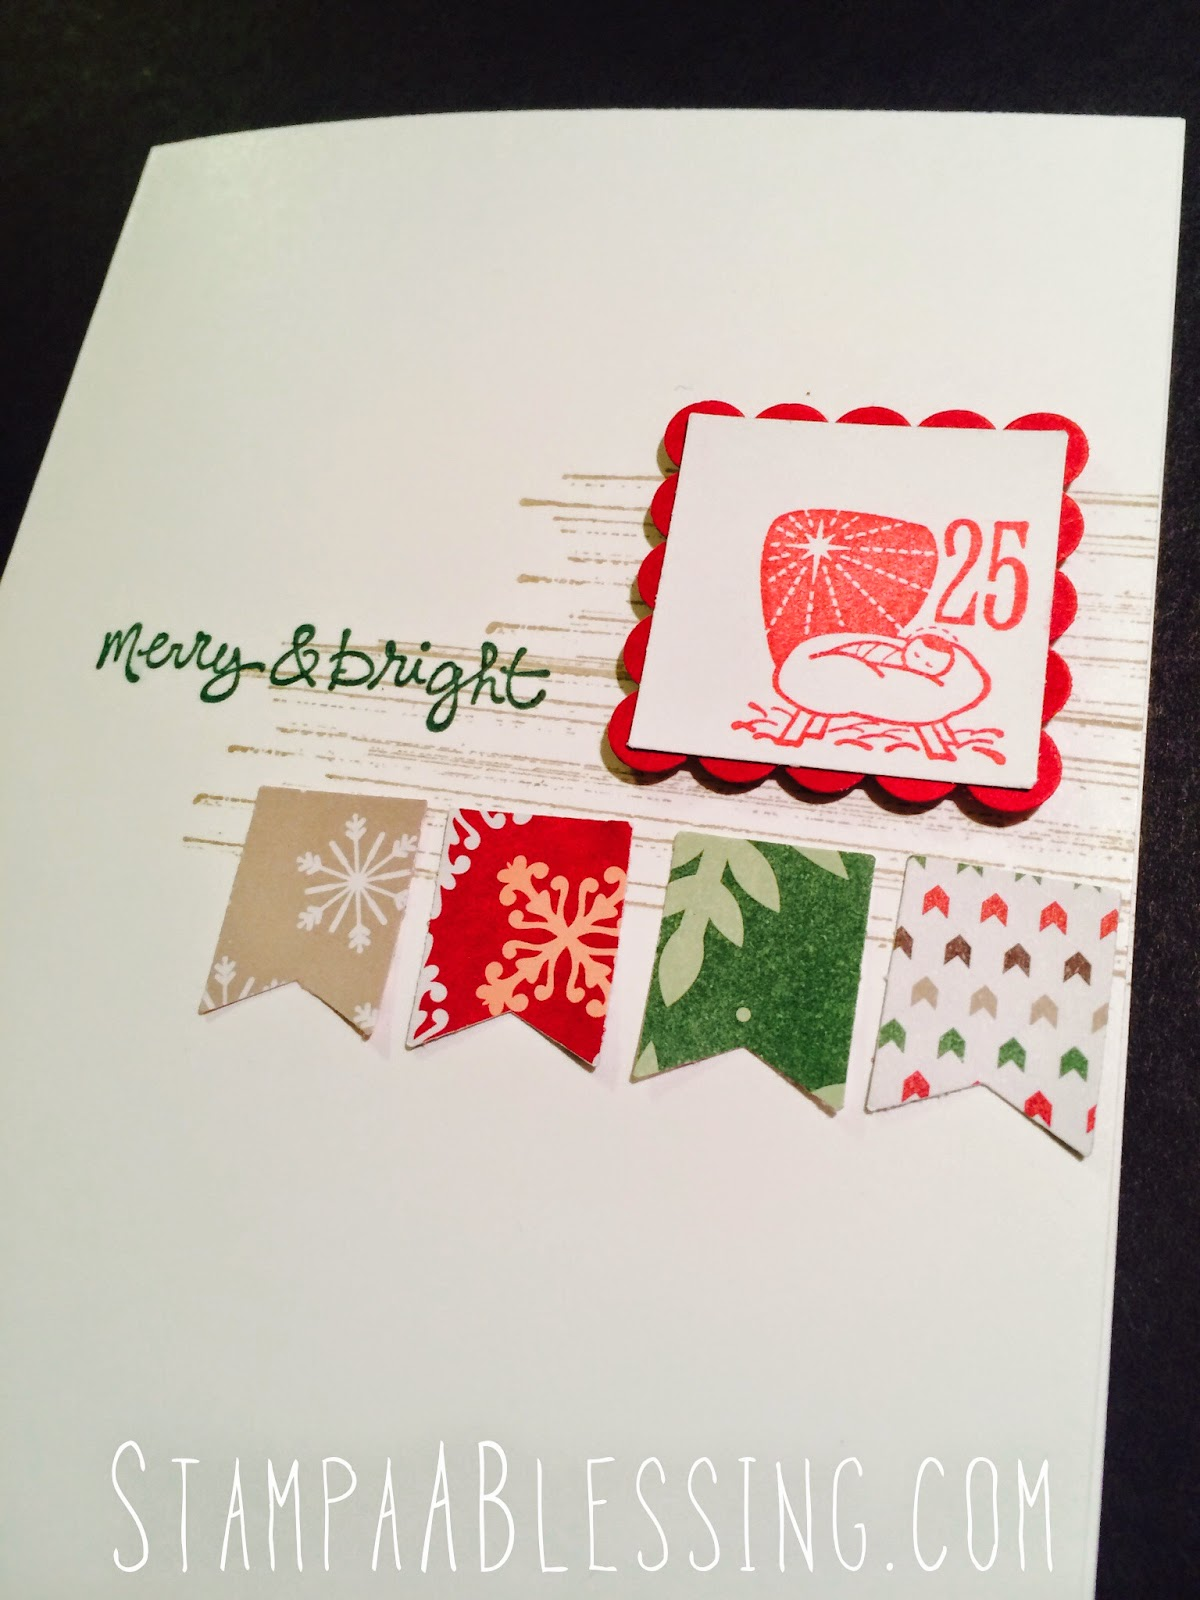 Stamp A Blessing Christmas Cards With Kids And Year End